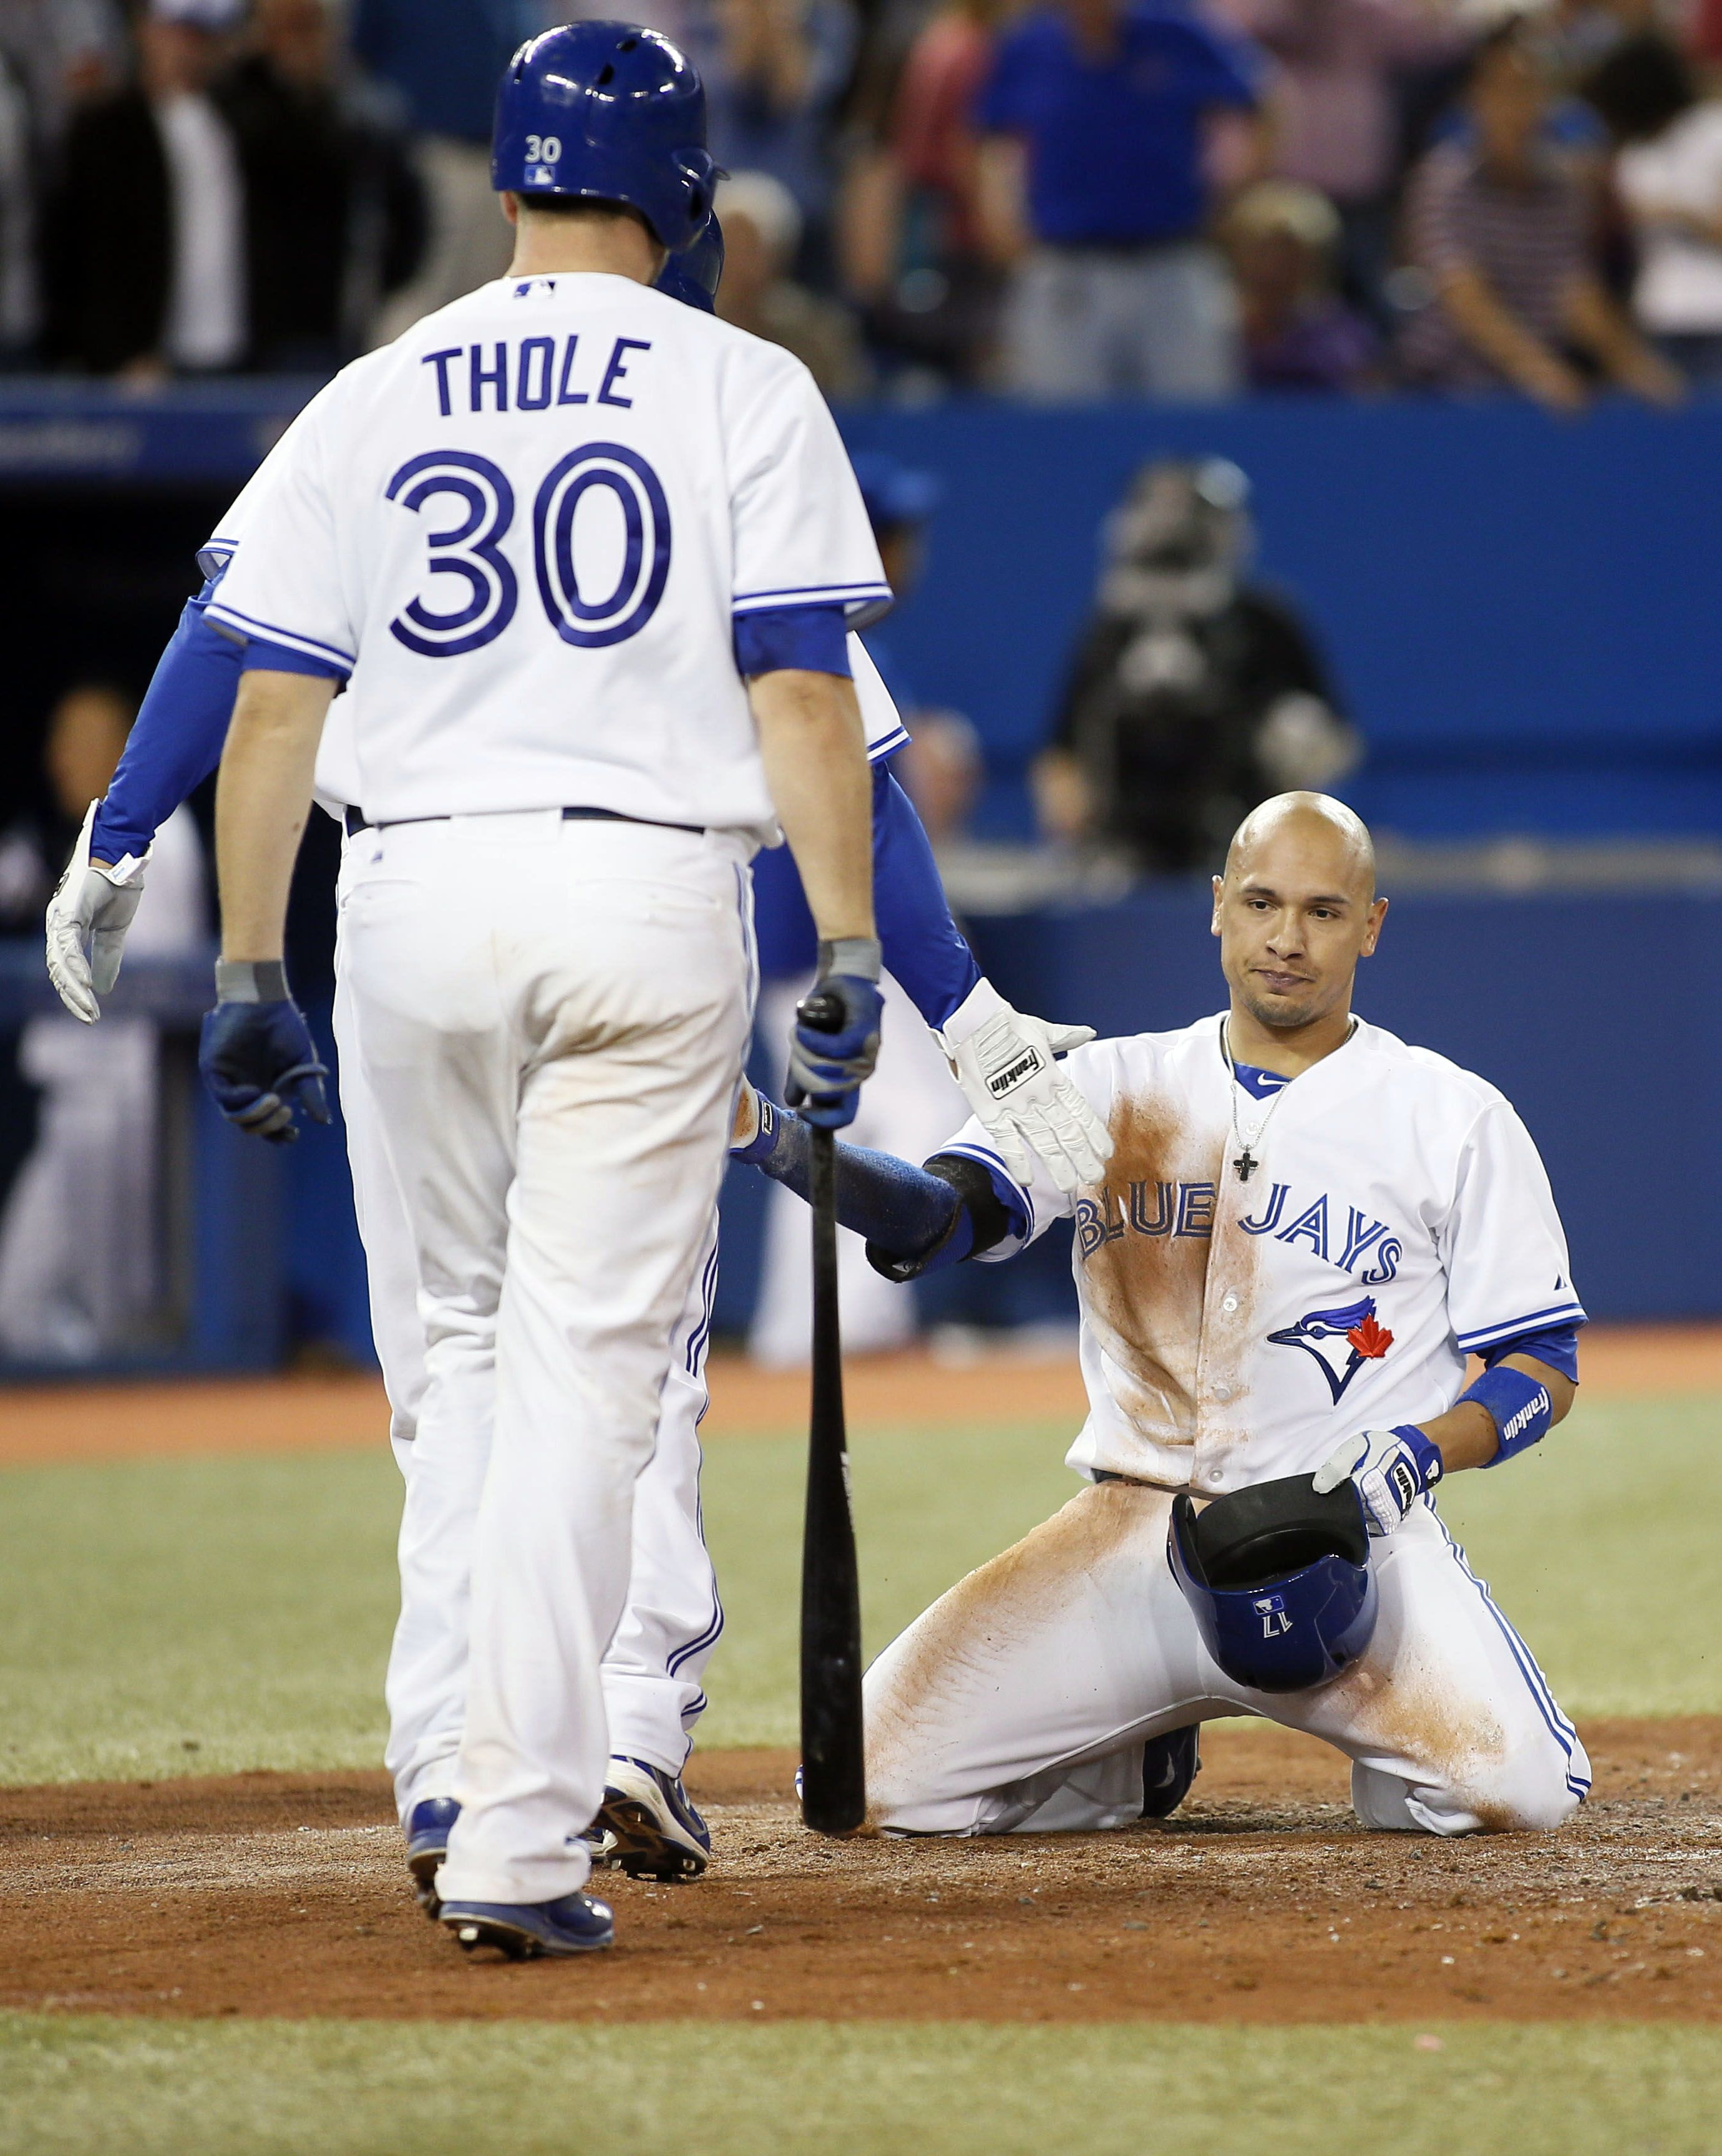 Crowdcam Hot Shot Toronto Blue Jays Second Baseman Ryan Goins Reacts After Being Tagged Out At Home Plate By Tampa Toronto Blue Jays Blue Jays Tampa Bay Rays